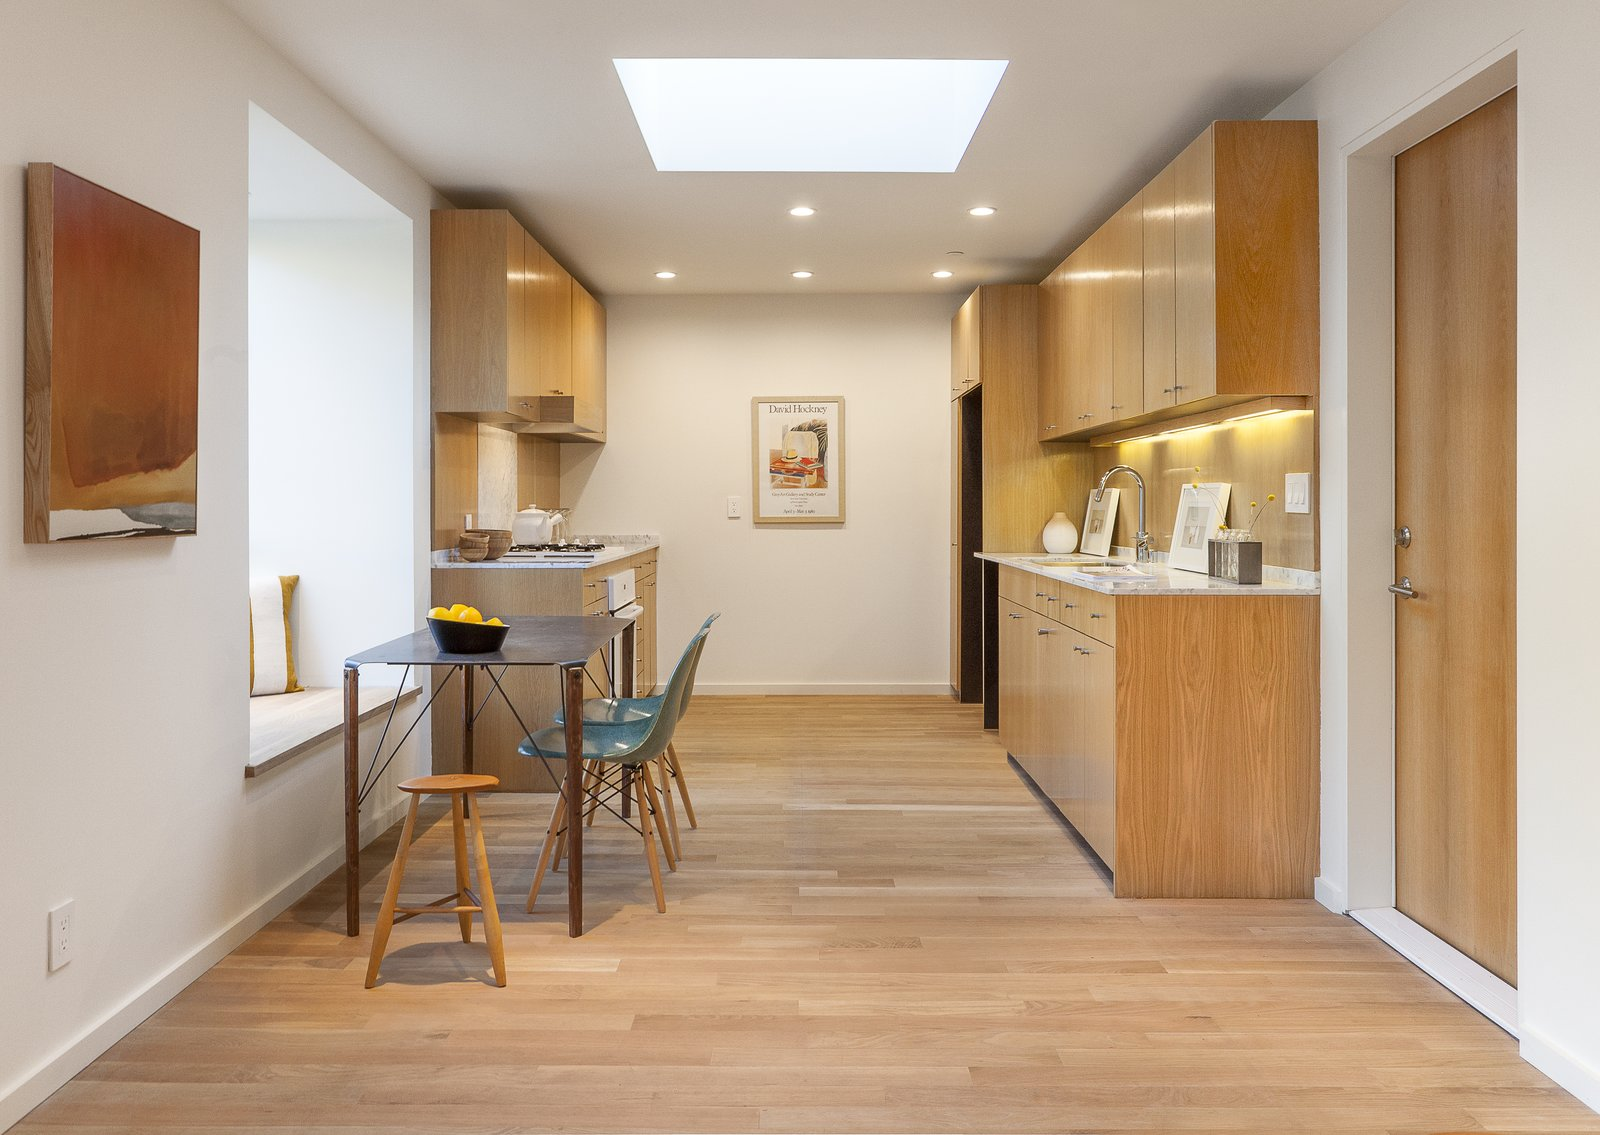 """White oak was also used for the kitchen cabinetry, and white marble for the countertops. In the open-plan dining area, another window seat pulls double duty as a bench for the kitchen table.  """"The bump-outs are designed to function as built-in furniture,"""" he says. """"I loved the idea of turning the walls into miniature habitable spaces, and making the house itself part of the furniture.""""  Photo 8 of 9 in Twin Houses on Tiny Lots Stretch Outward for Space"""